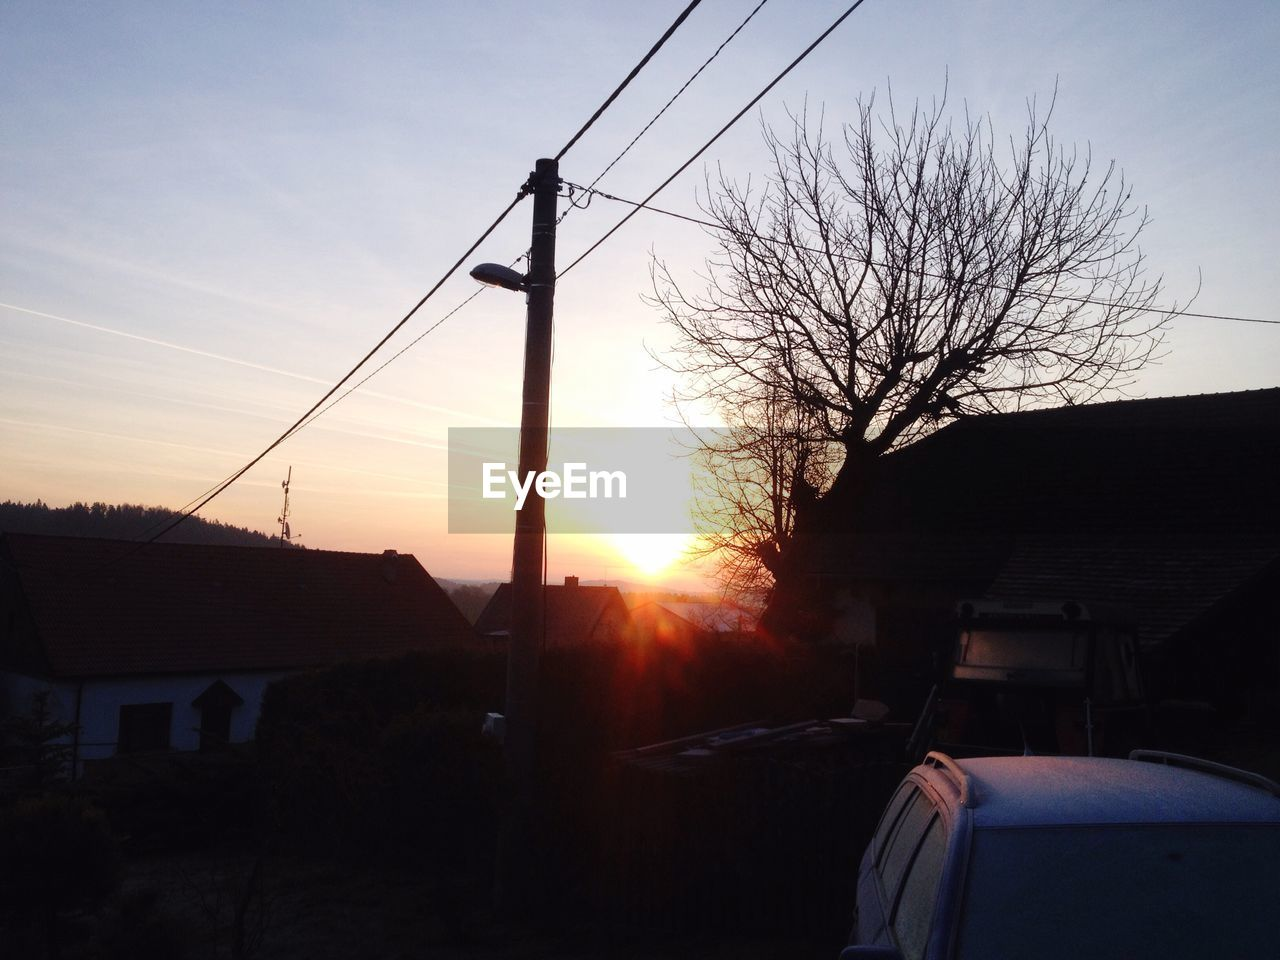 sunset, building exterior, car, built structure, cable, house, architecture, transportation, no people, silhouette, sky, mode of transport, outdoors, land vehicle, sunlight, tree, bare tree, nature, electricity pylon, day